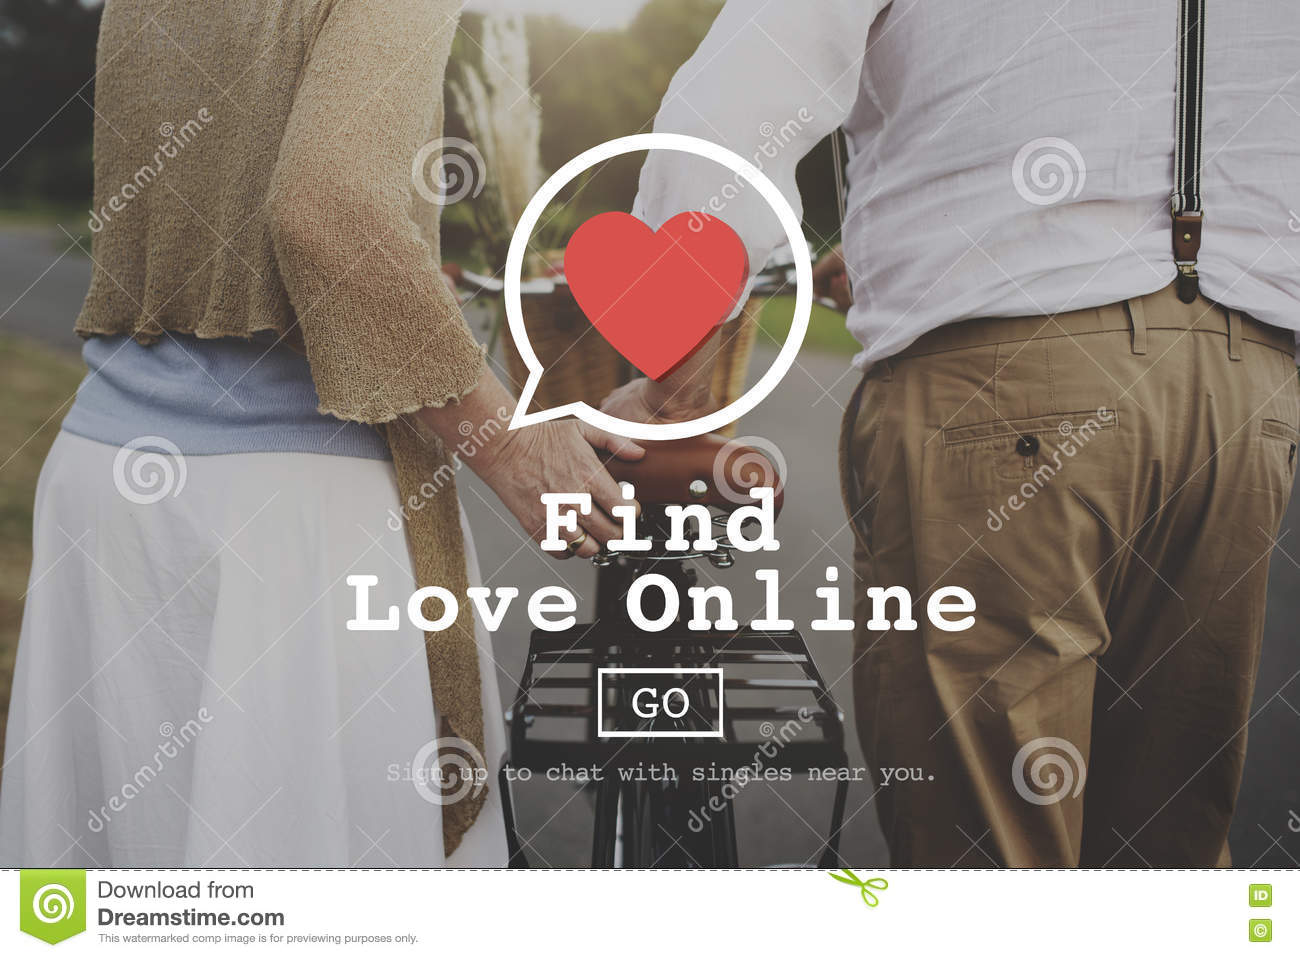 loving online dating Online dating (or internet dating) is a system that enables strangers to find and introduce themselves to new personal connections over the internet.